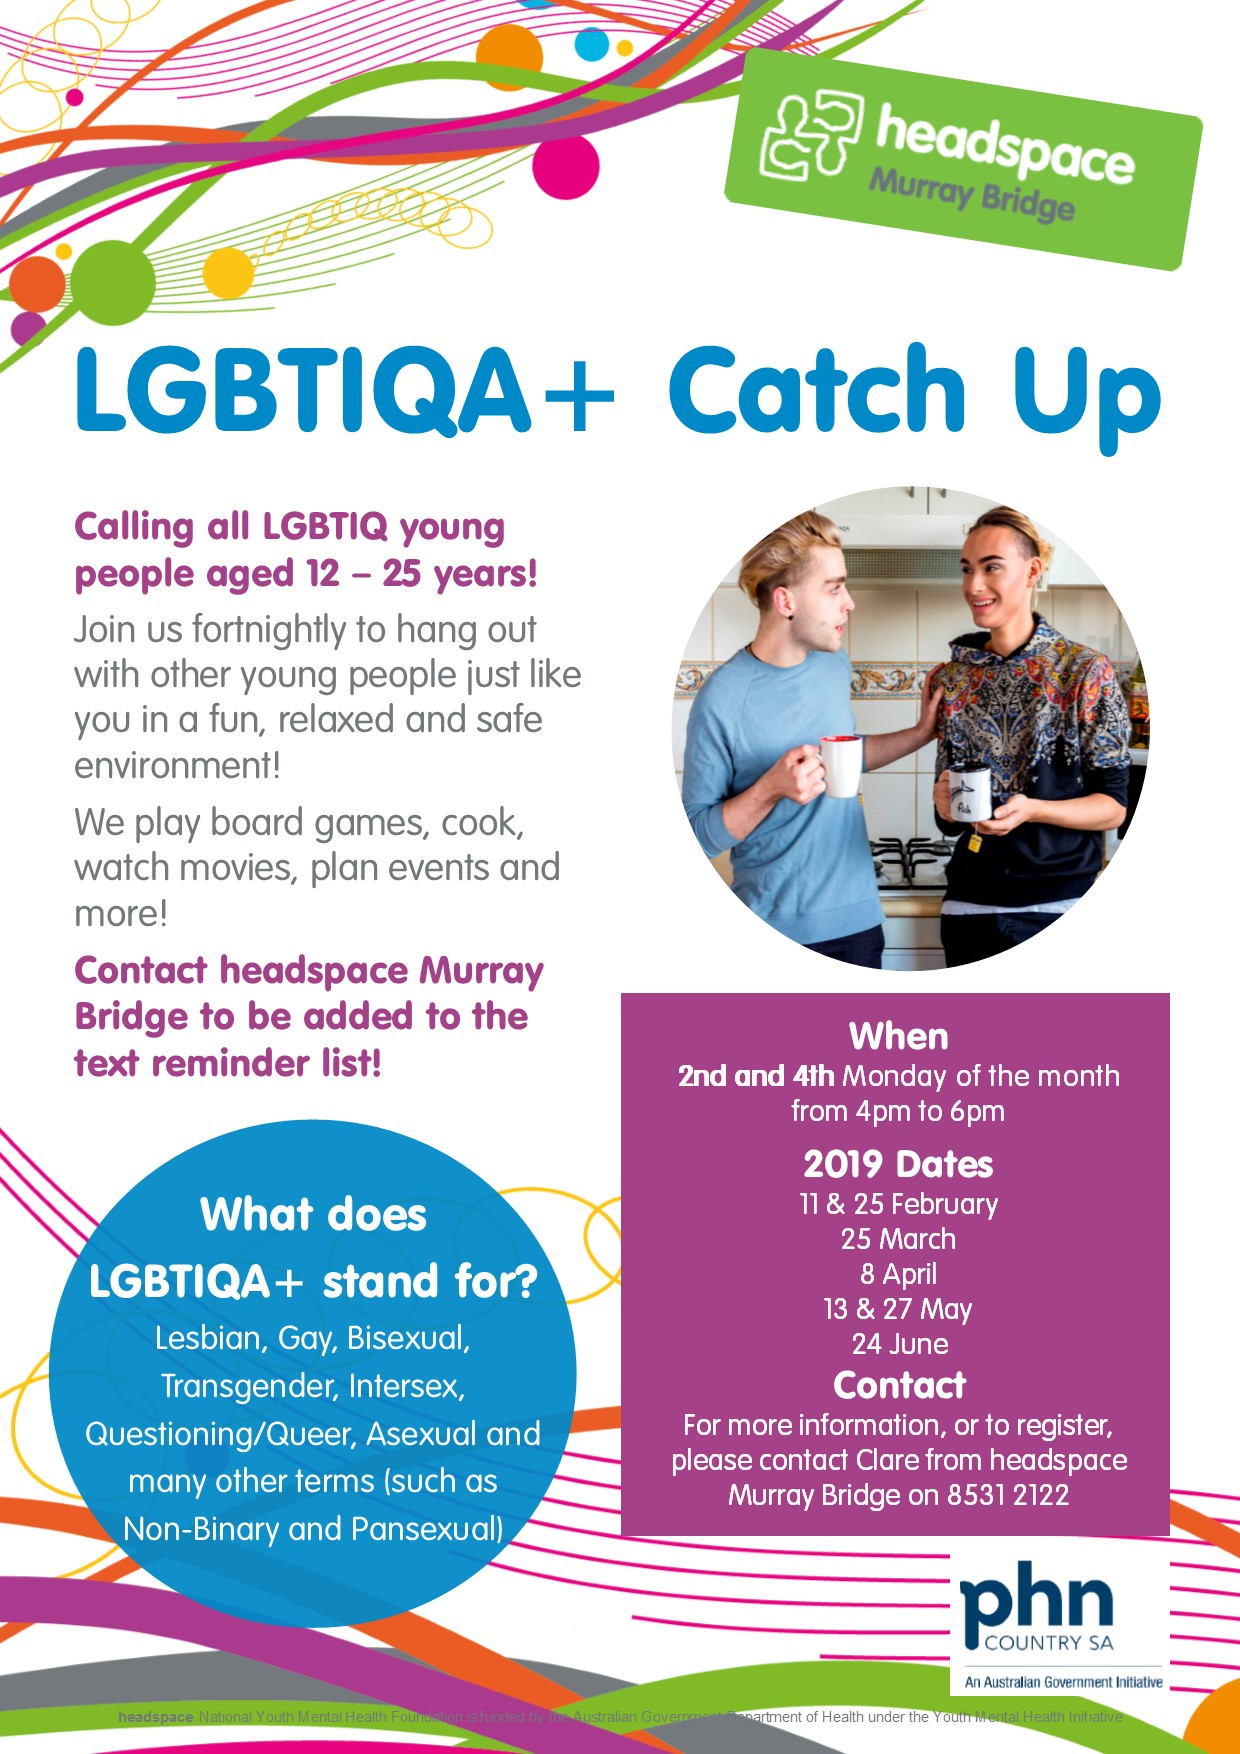 LGBTIQA+ Catch Up is back for 2019!!